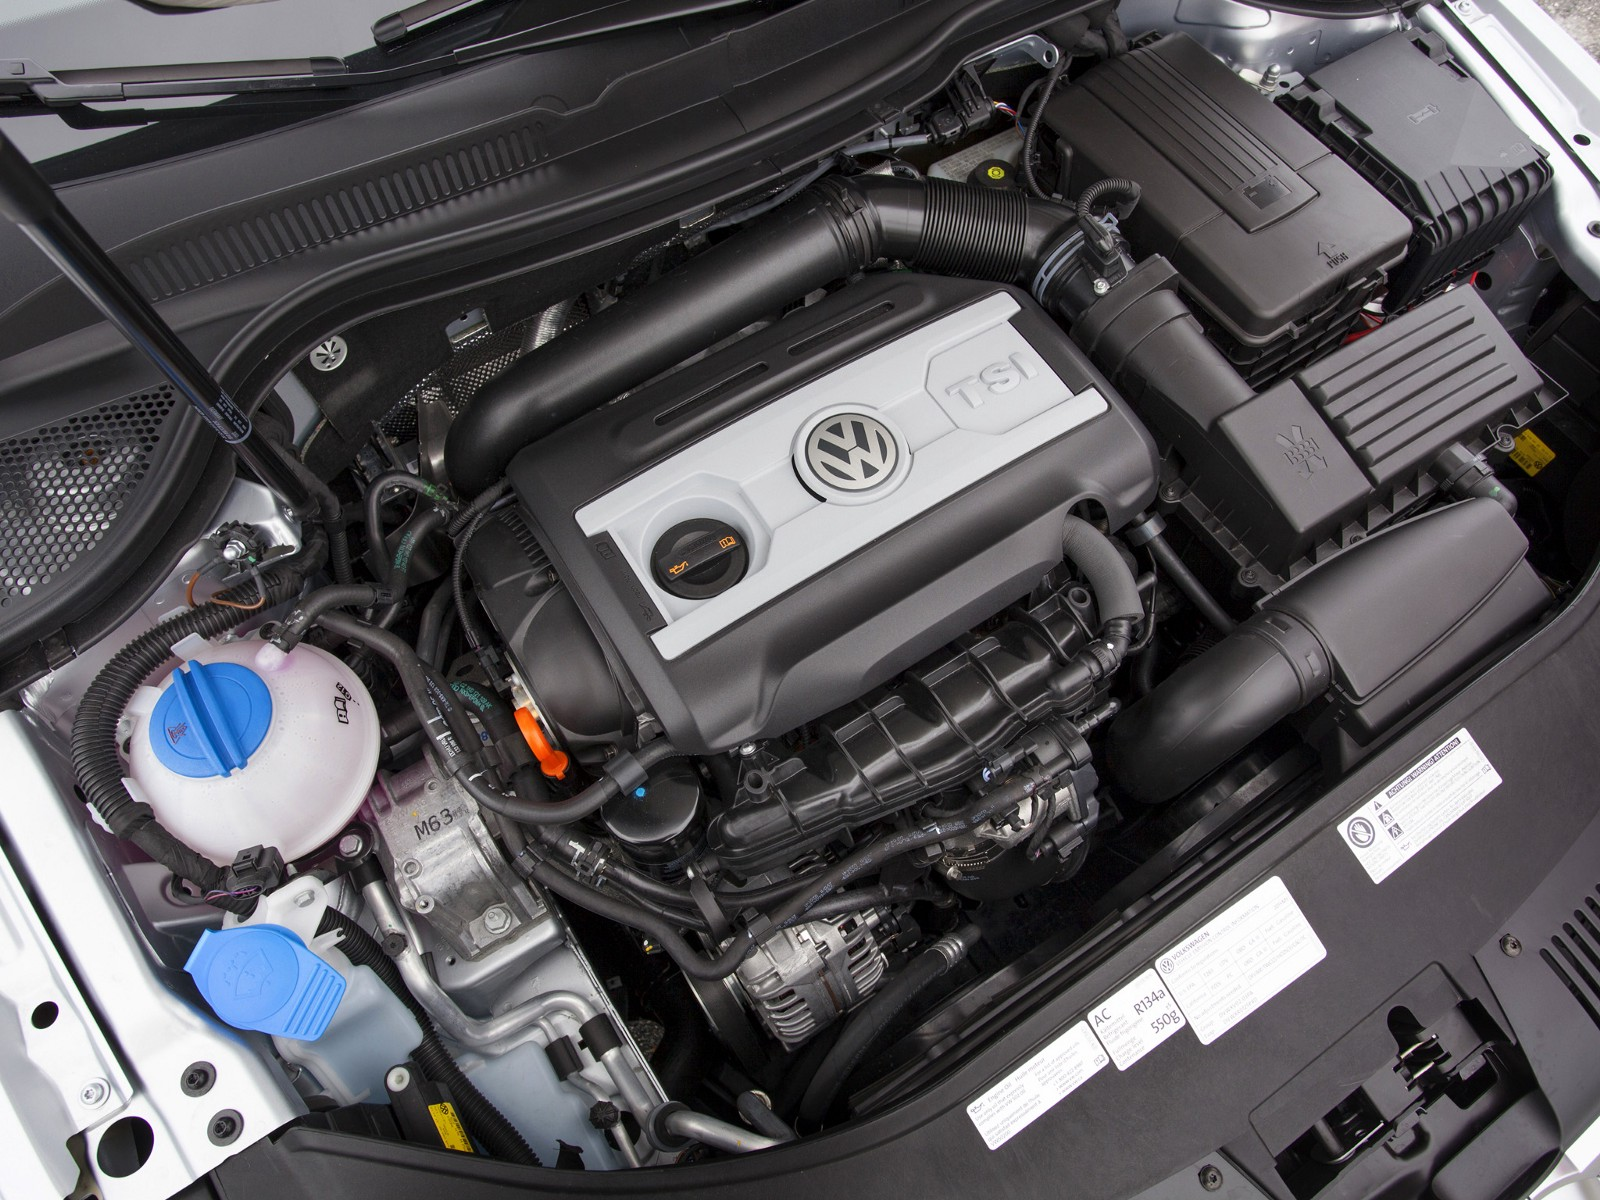 Show Kids Whats Under The Hood Before They Drive The Car